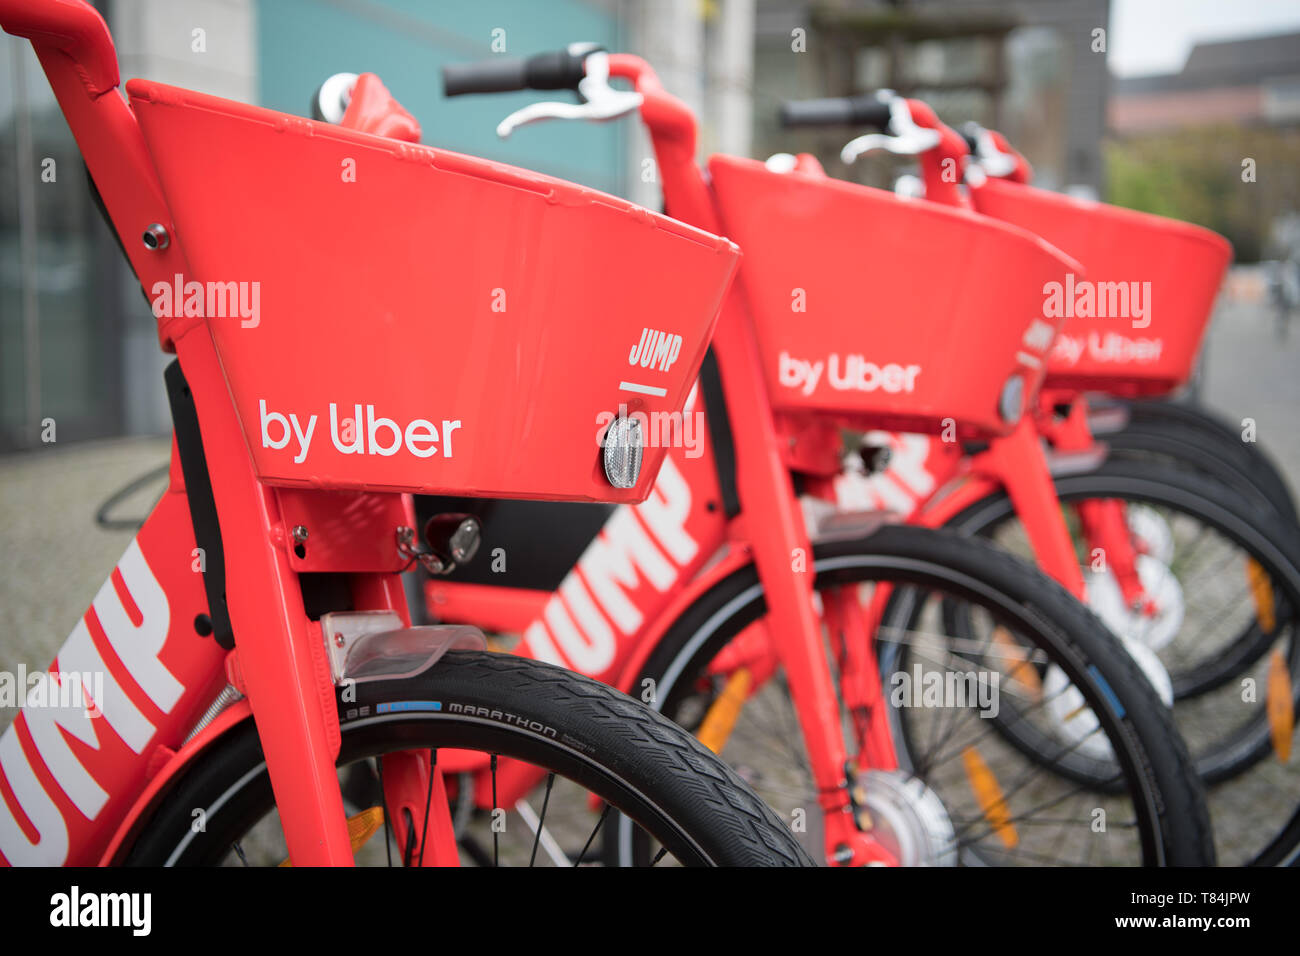 Berlin, Germany  10th May, 2019  Electric bicycles of the